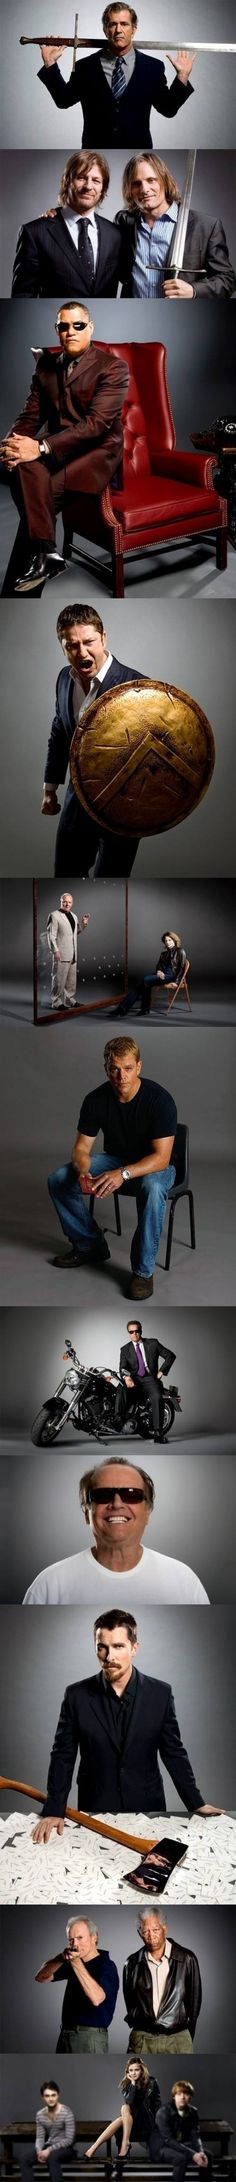 Famous actors recreating pictures from movies. I LOVE this!